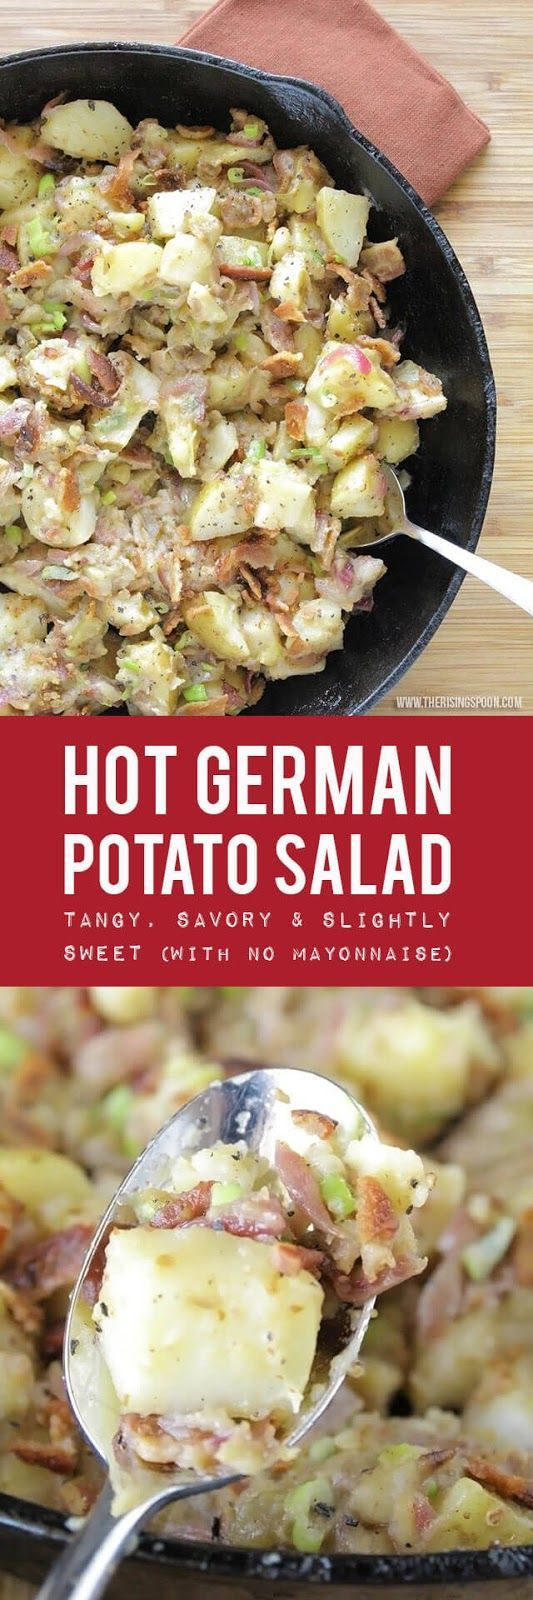 An Easy Hot German Potato Salad Recipe that's tangy, savory, and slightly sweet. A great alternative to normal mayo potato salad. (Gluten-free, Grain-Free & Dairy-Free)